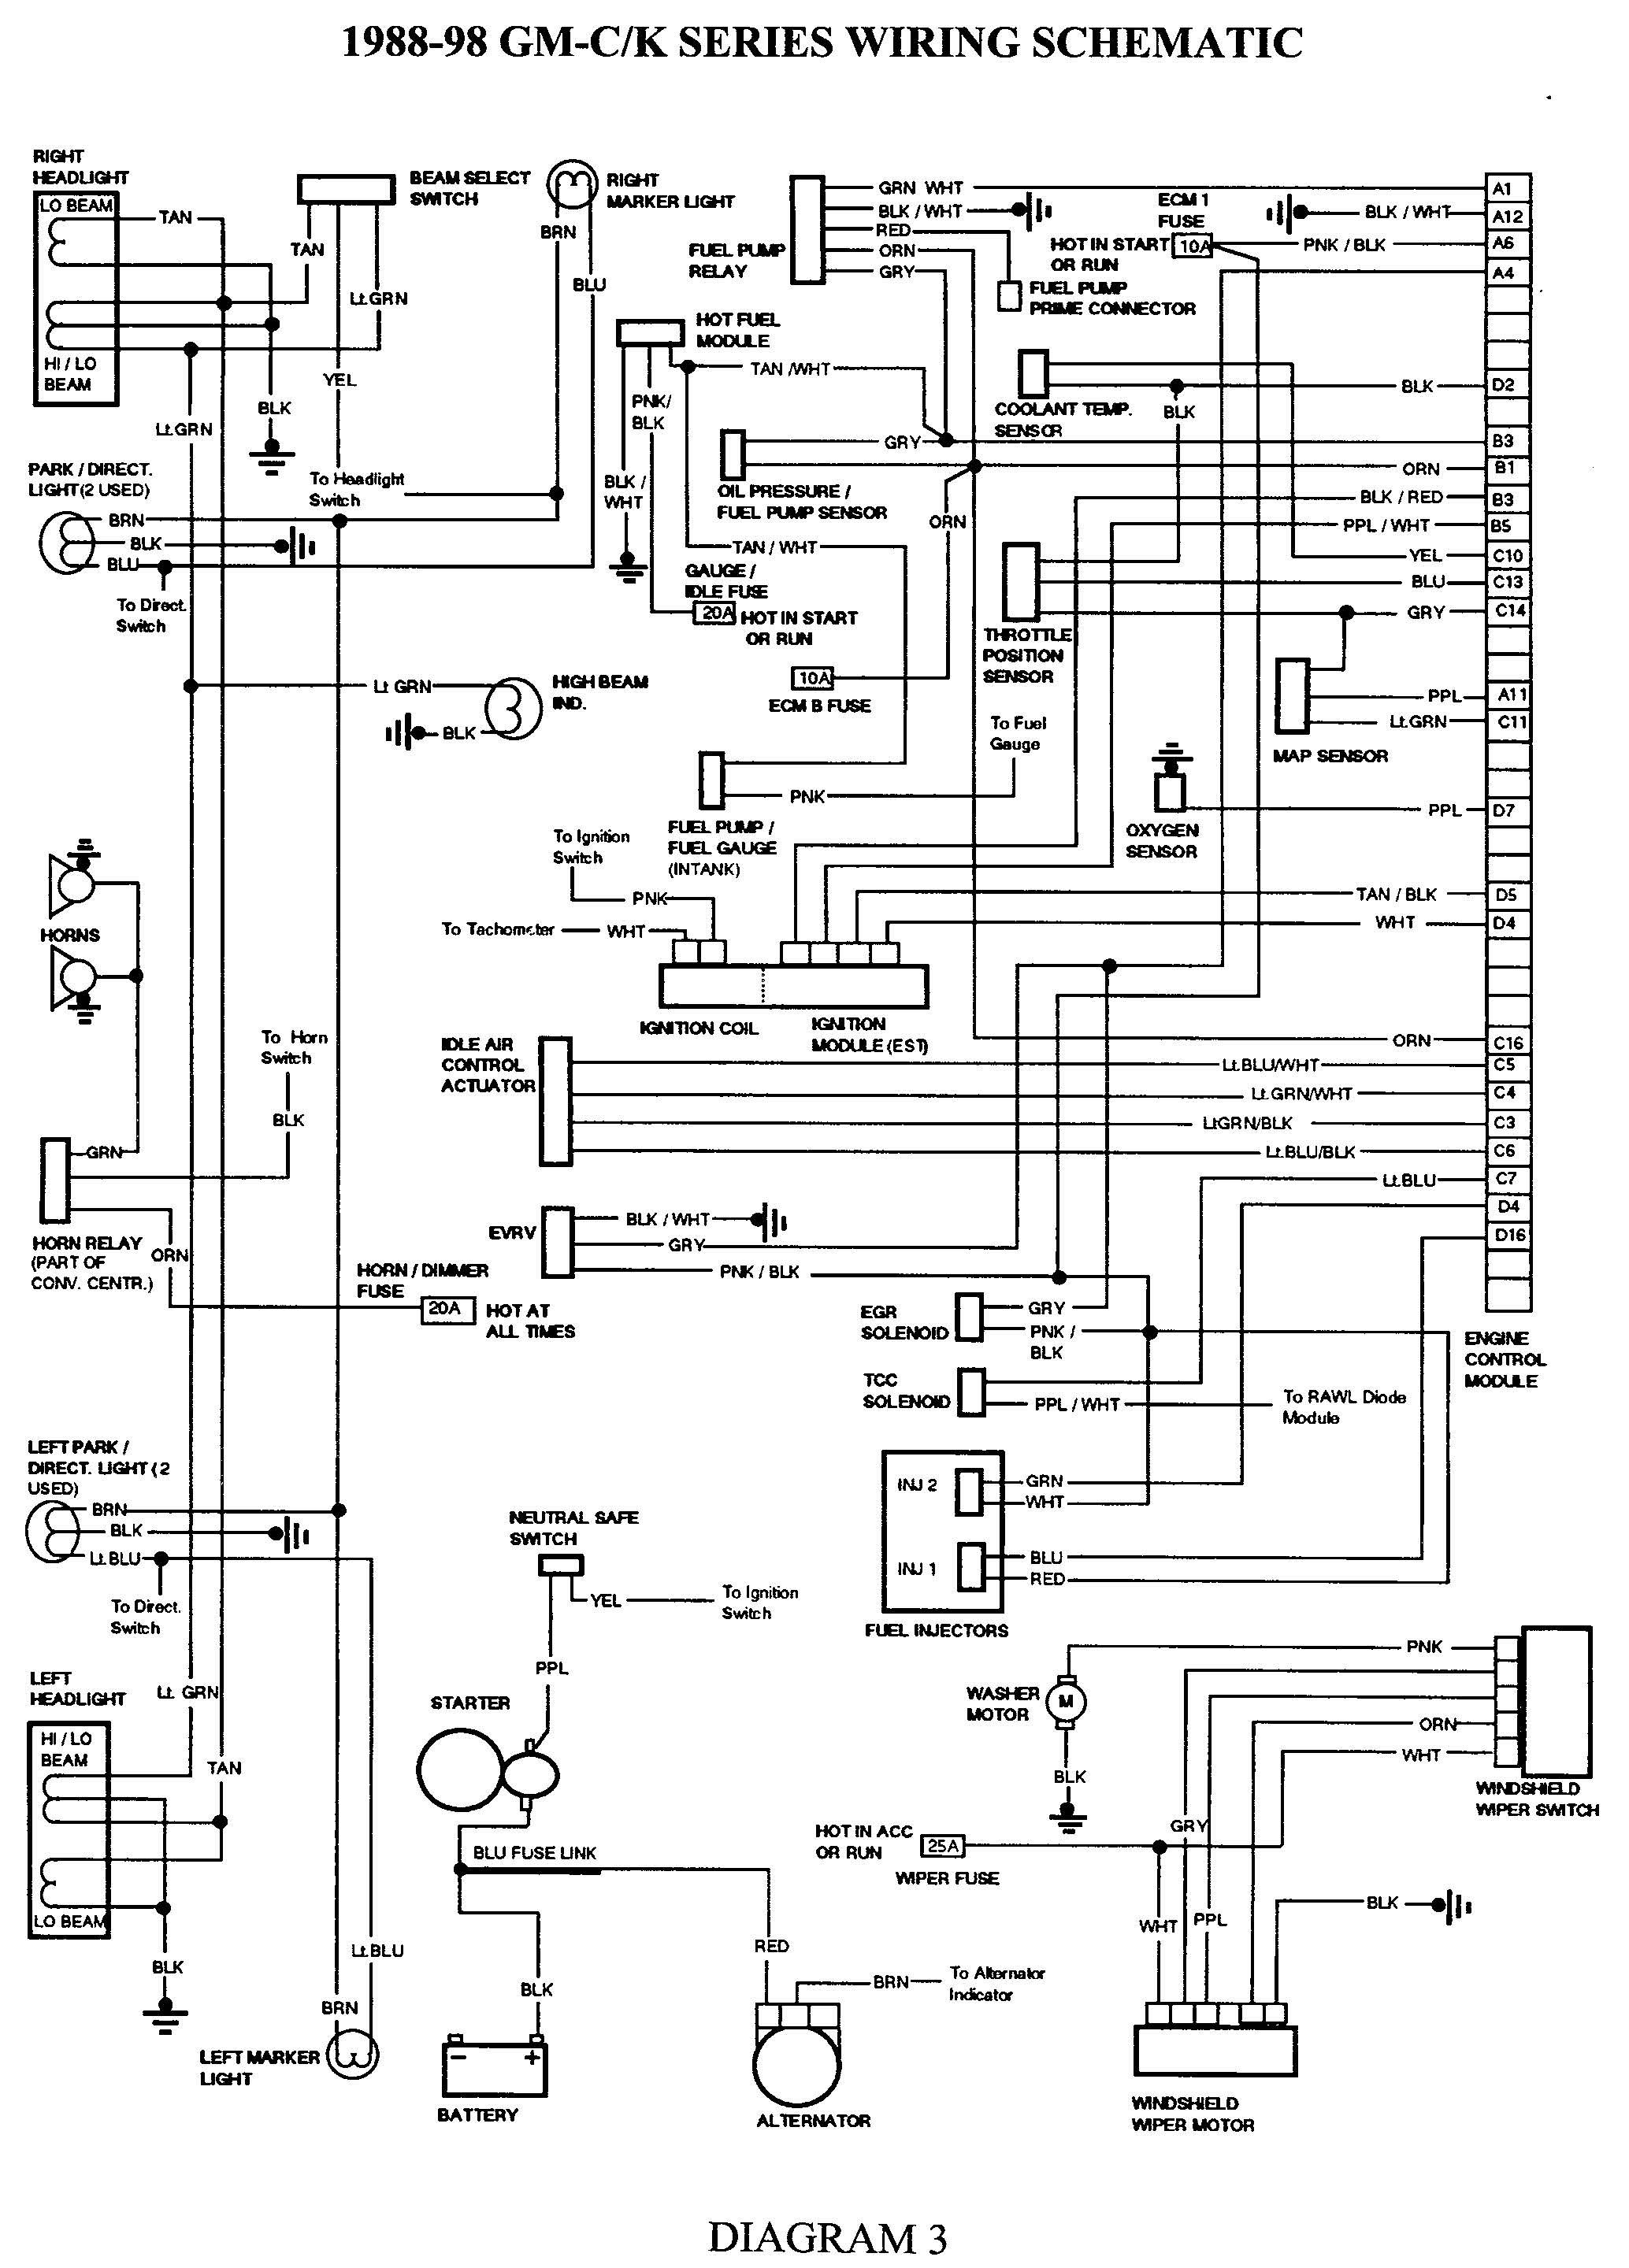 hight resolution of 1986 chevrolet c10 5 7 v8 engine wiring diagram chevrolet c 1500 2009 chevy silverado 1500 1500 chevy silverado diagram